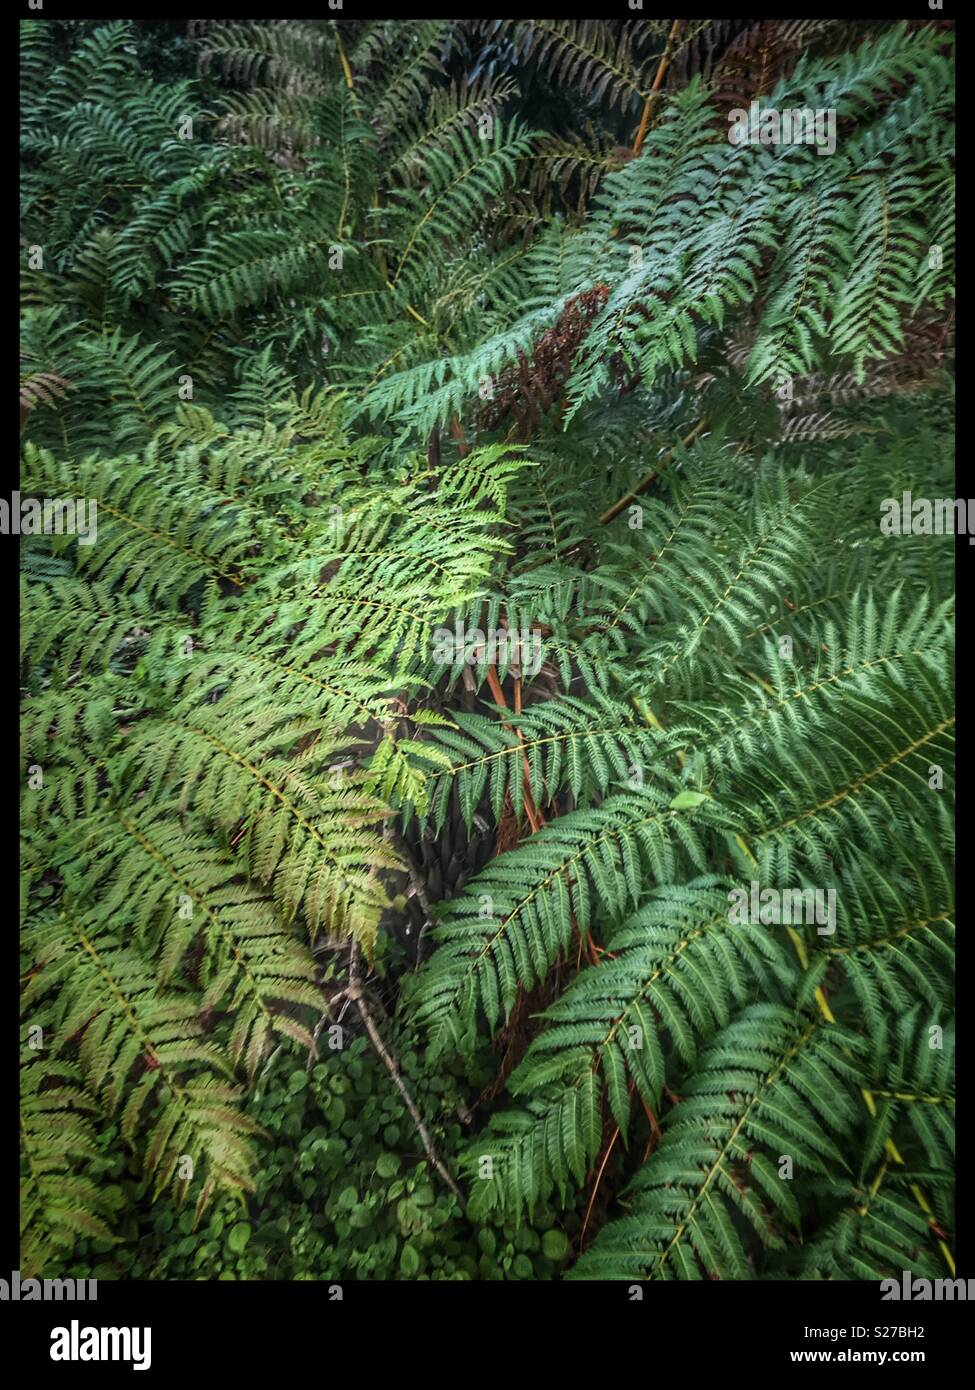 Fern leaves in Kirstenbosch National Botanical Gardens, Cape Town, South Africa. - Stock Image